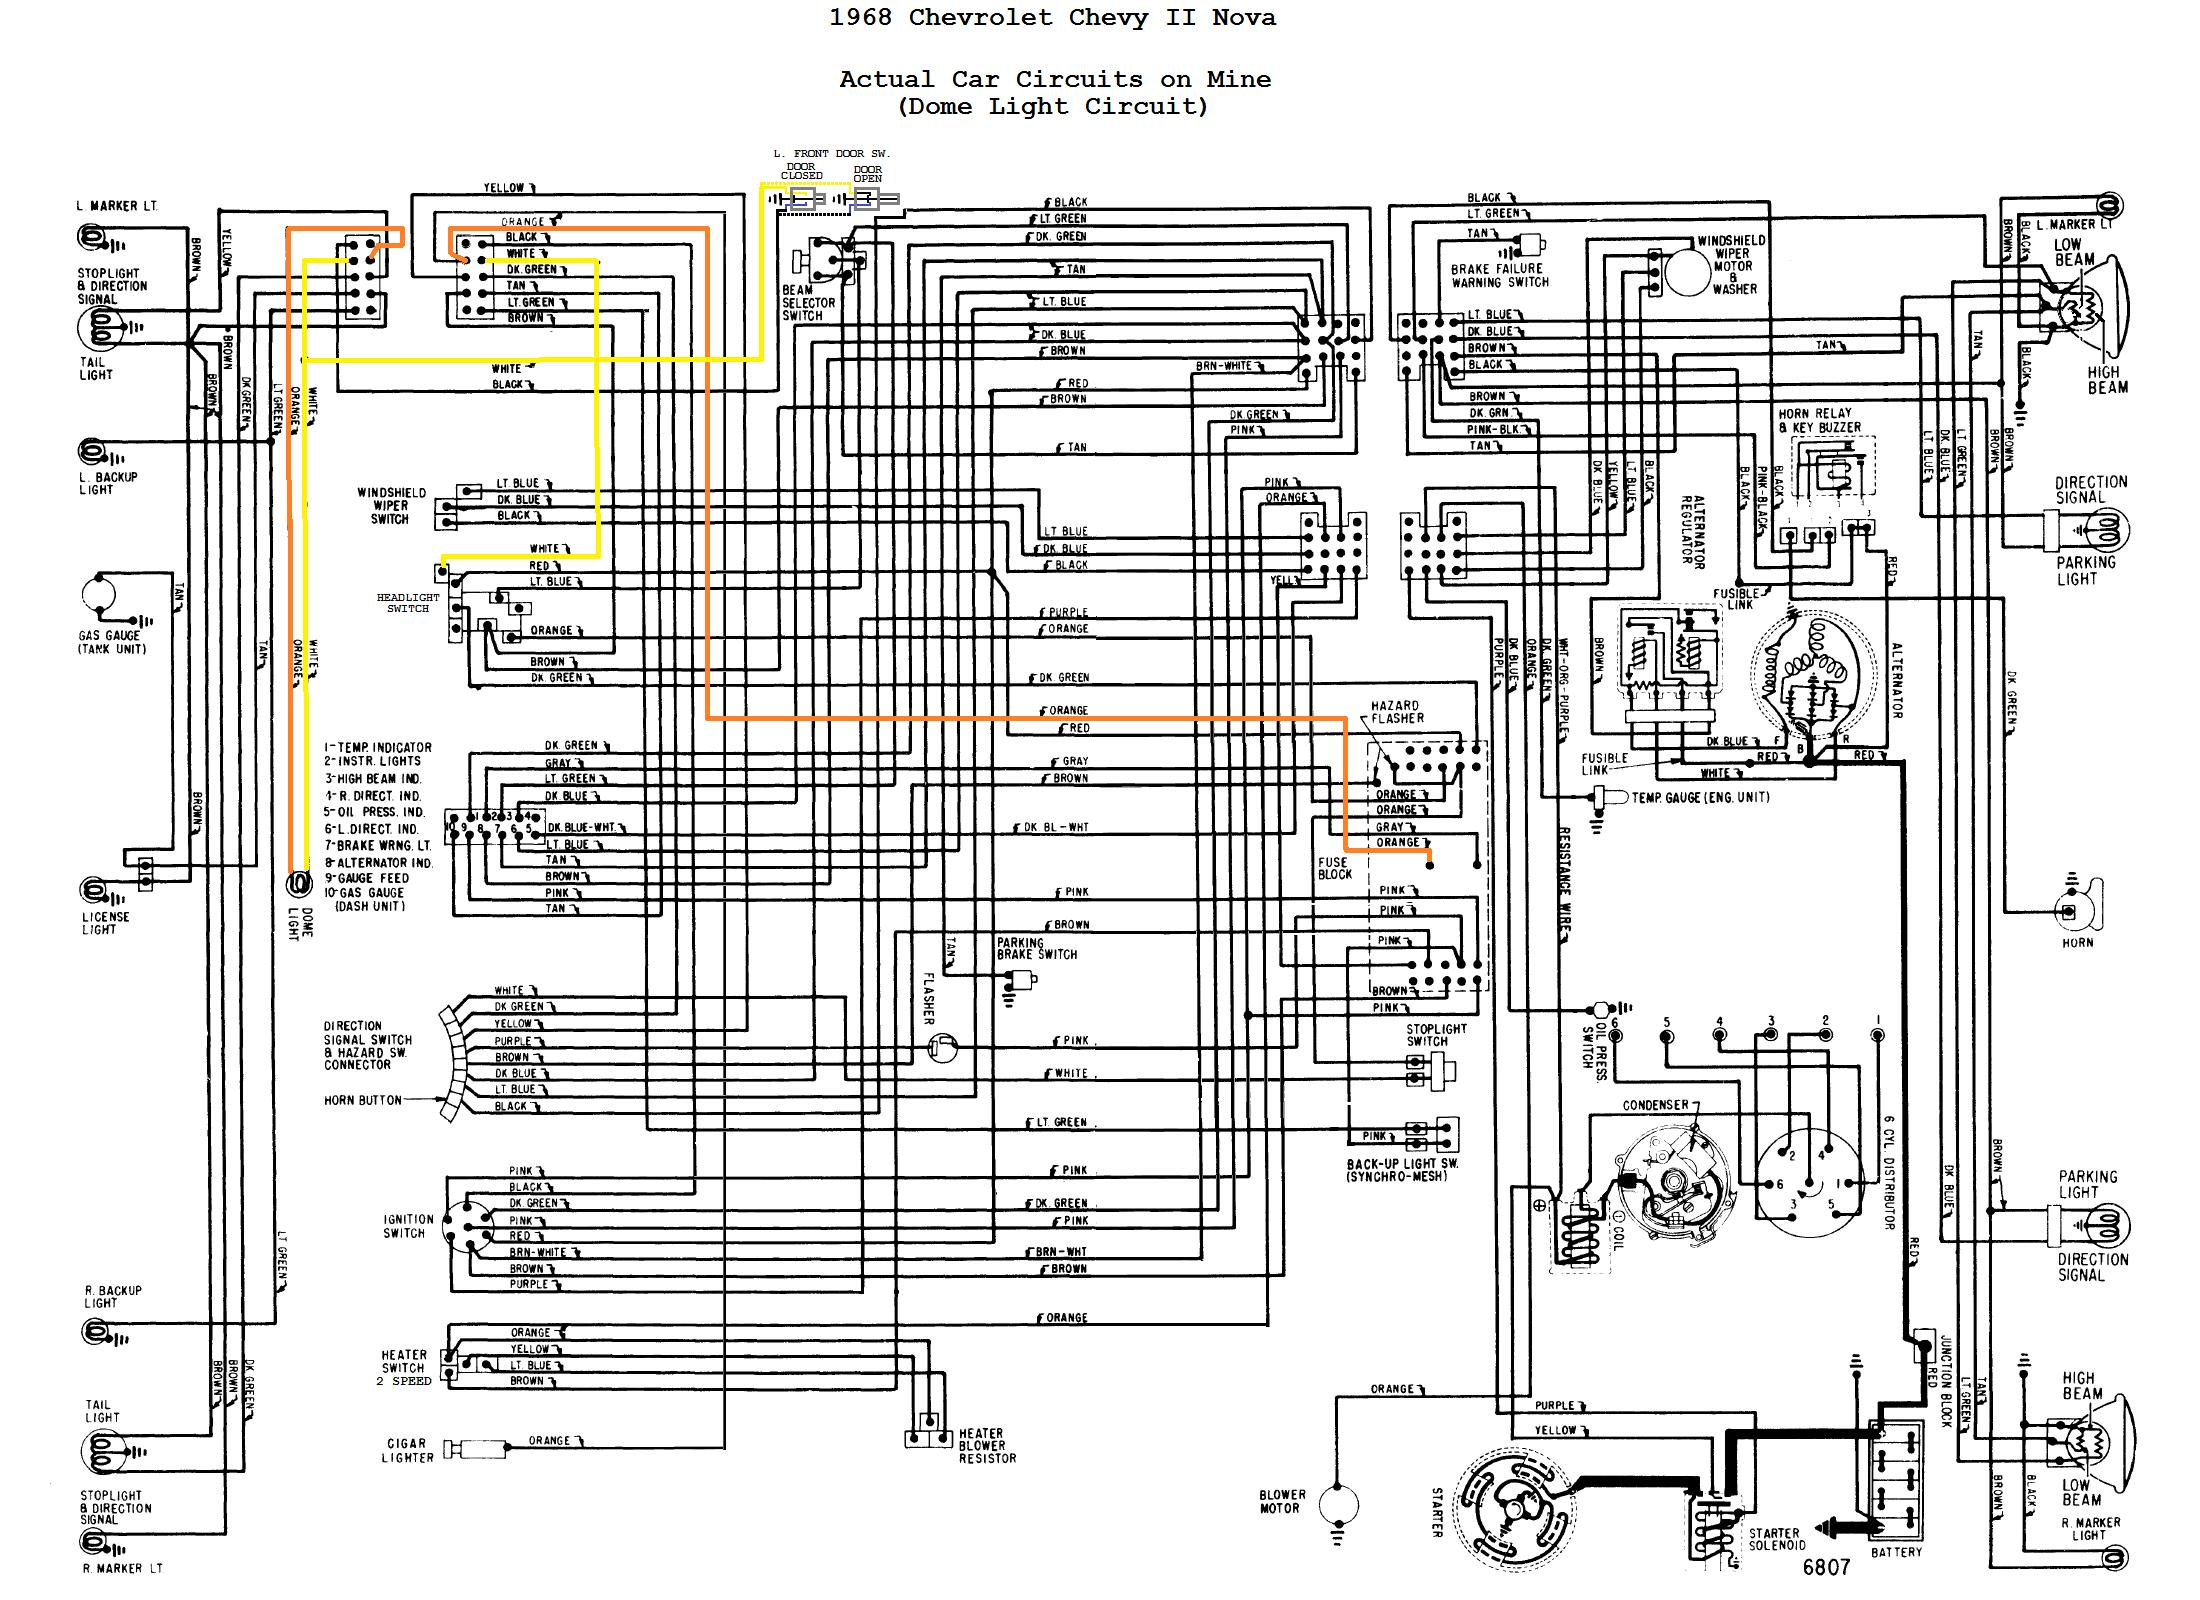 1970 chevy alternator wiring diagram 1970 chevy wiring diagram e1 wiring diagram  1970 chevy wiring diagram e1 wiring